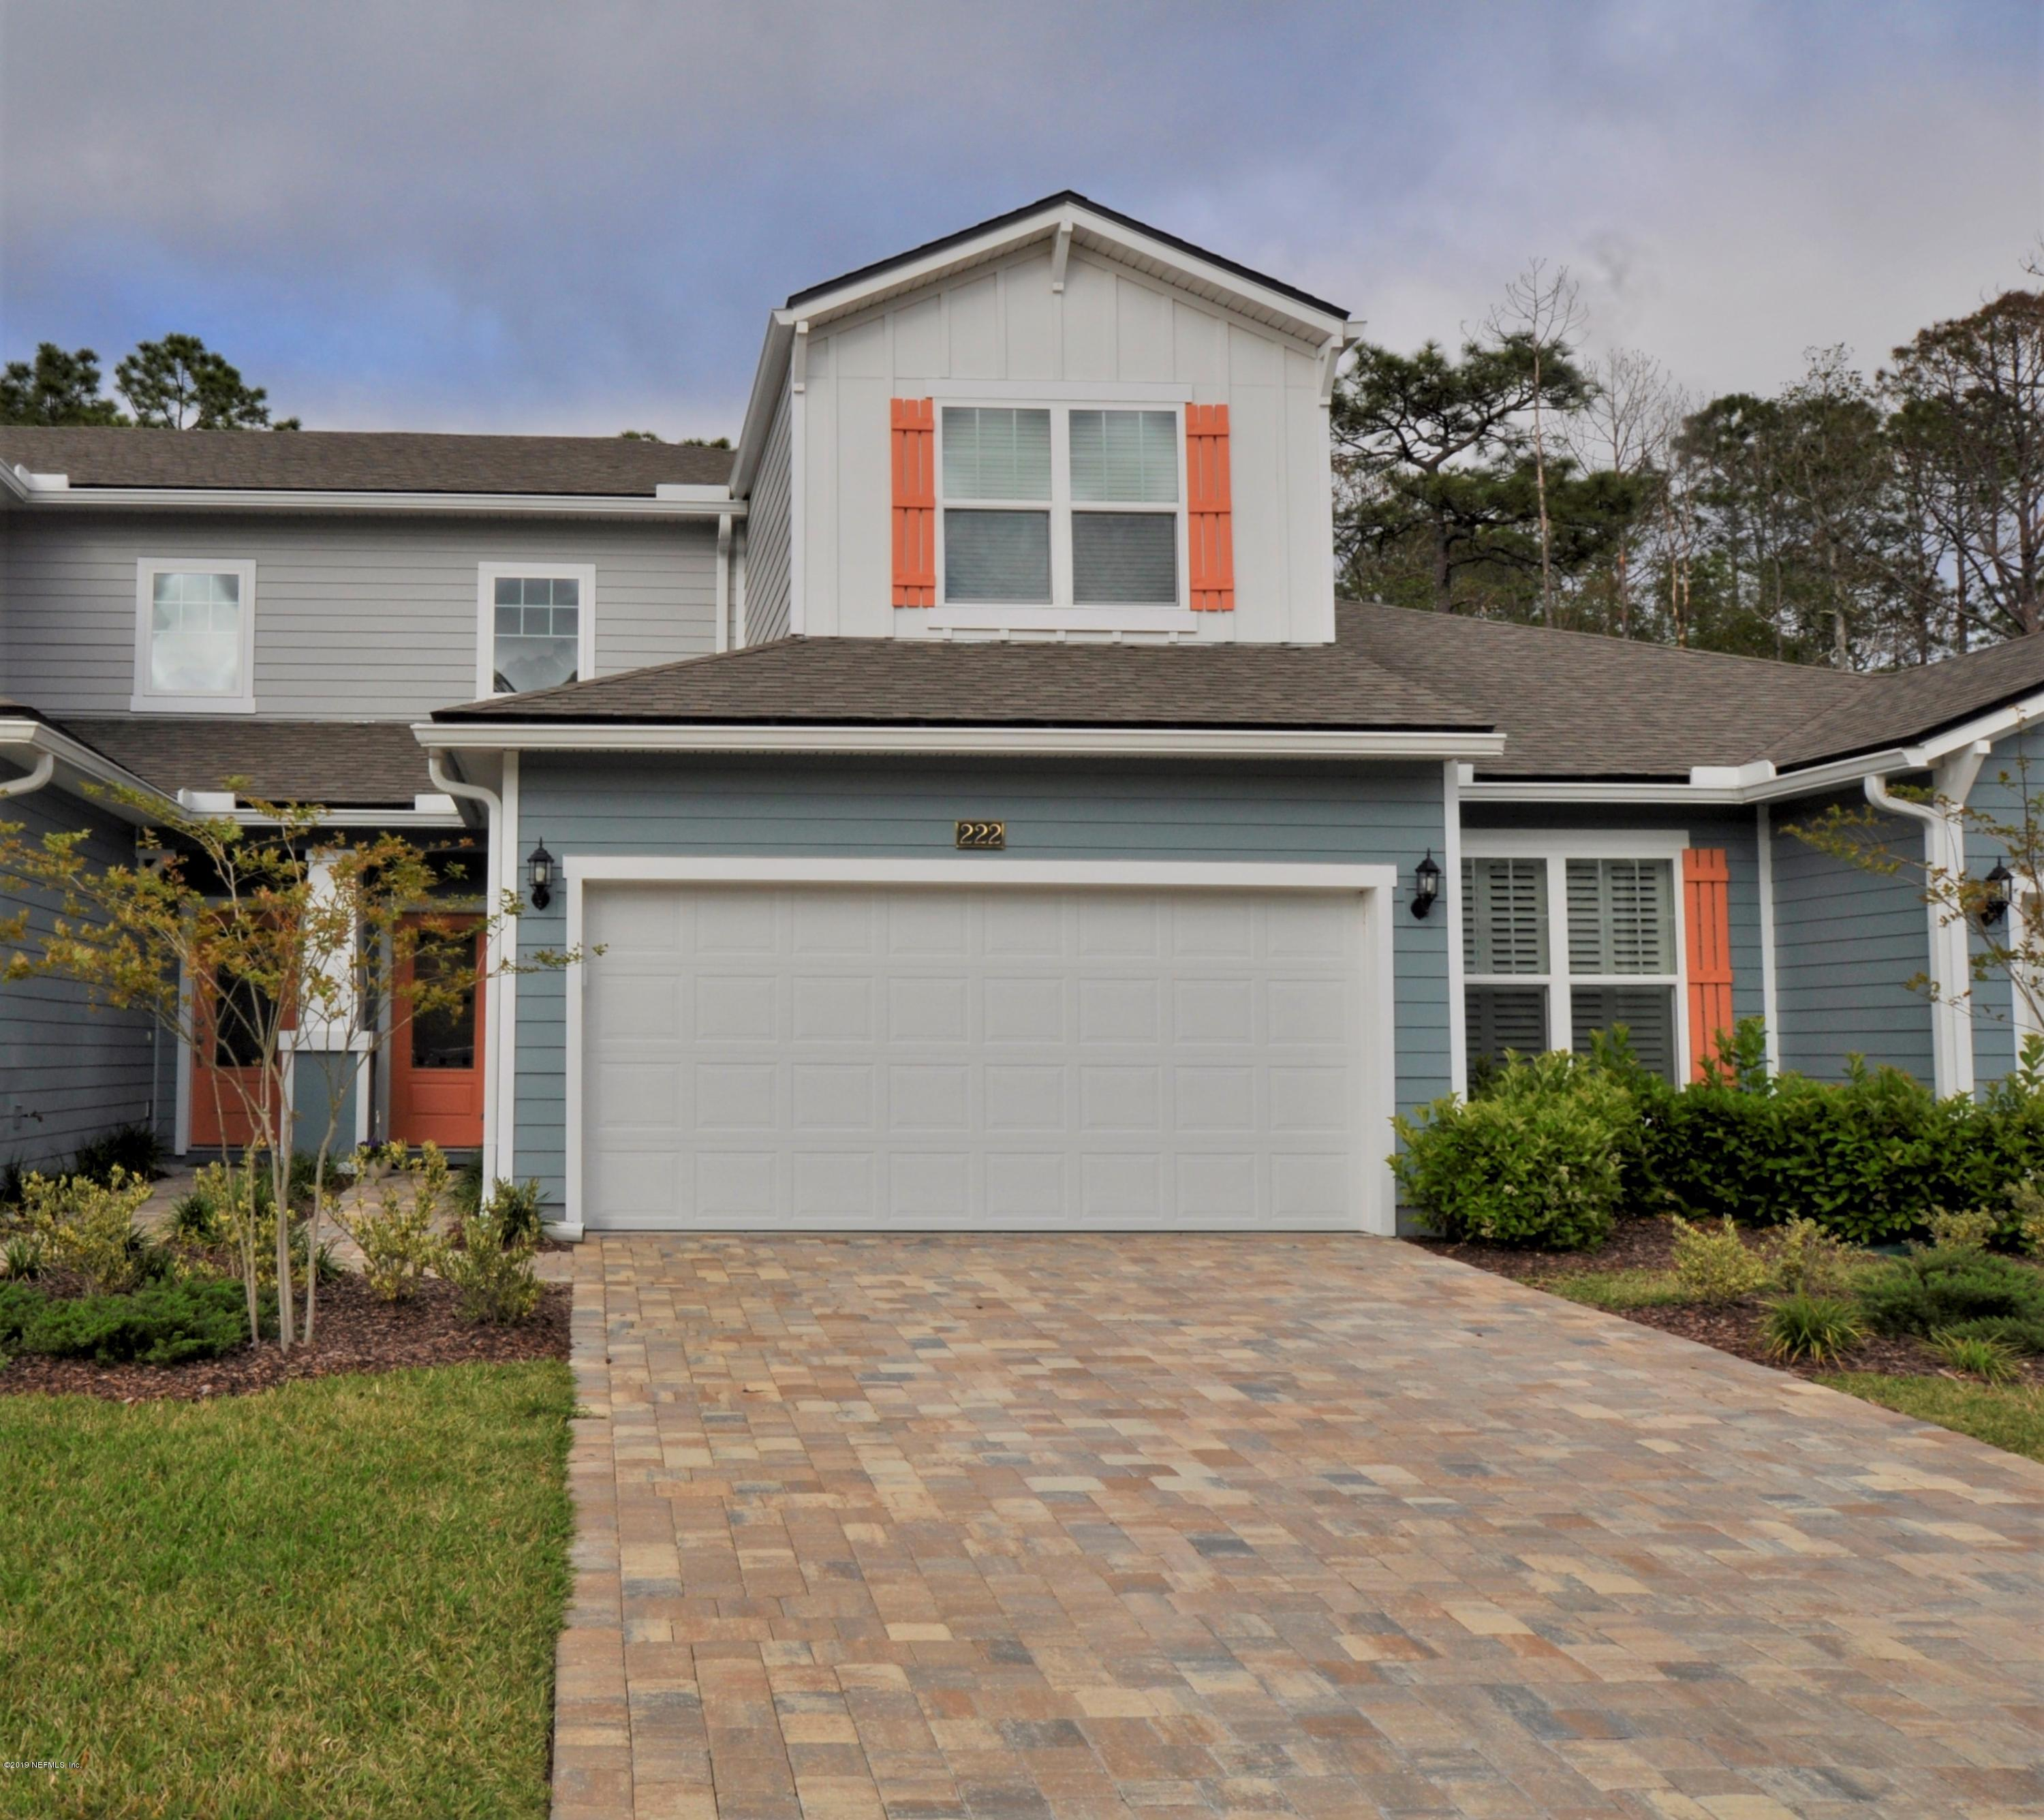 Photo of 222 PINDO PALM, PONTE VEDRA, FL 32081